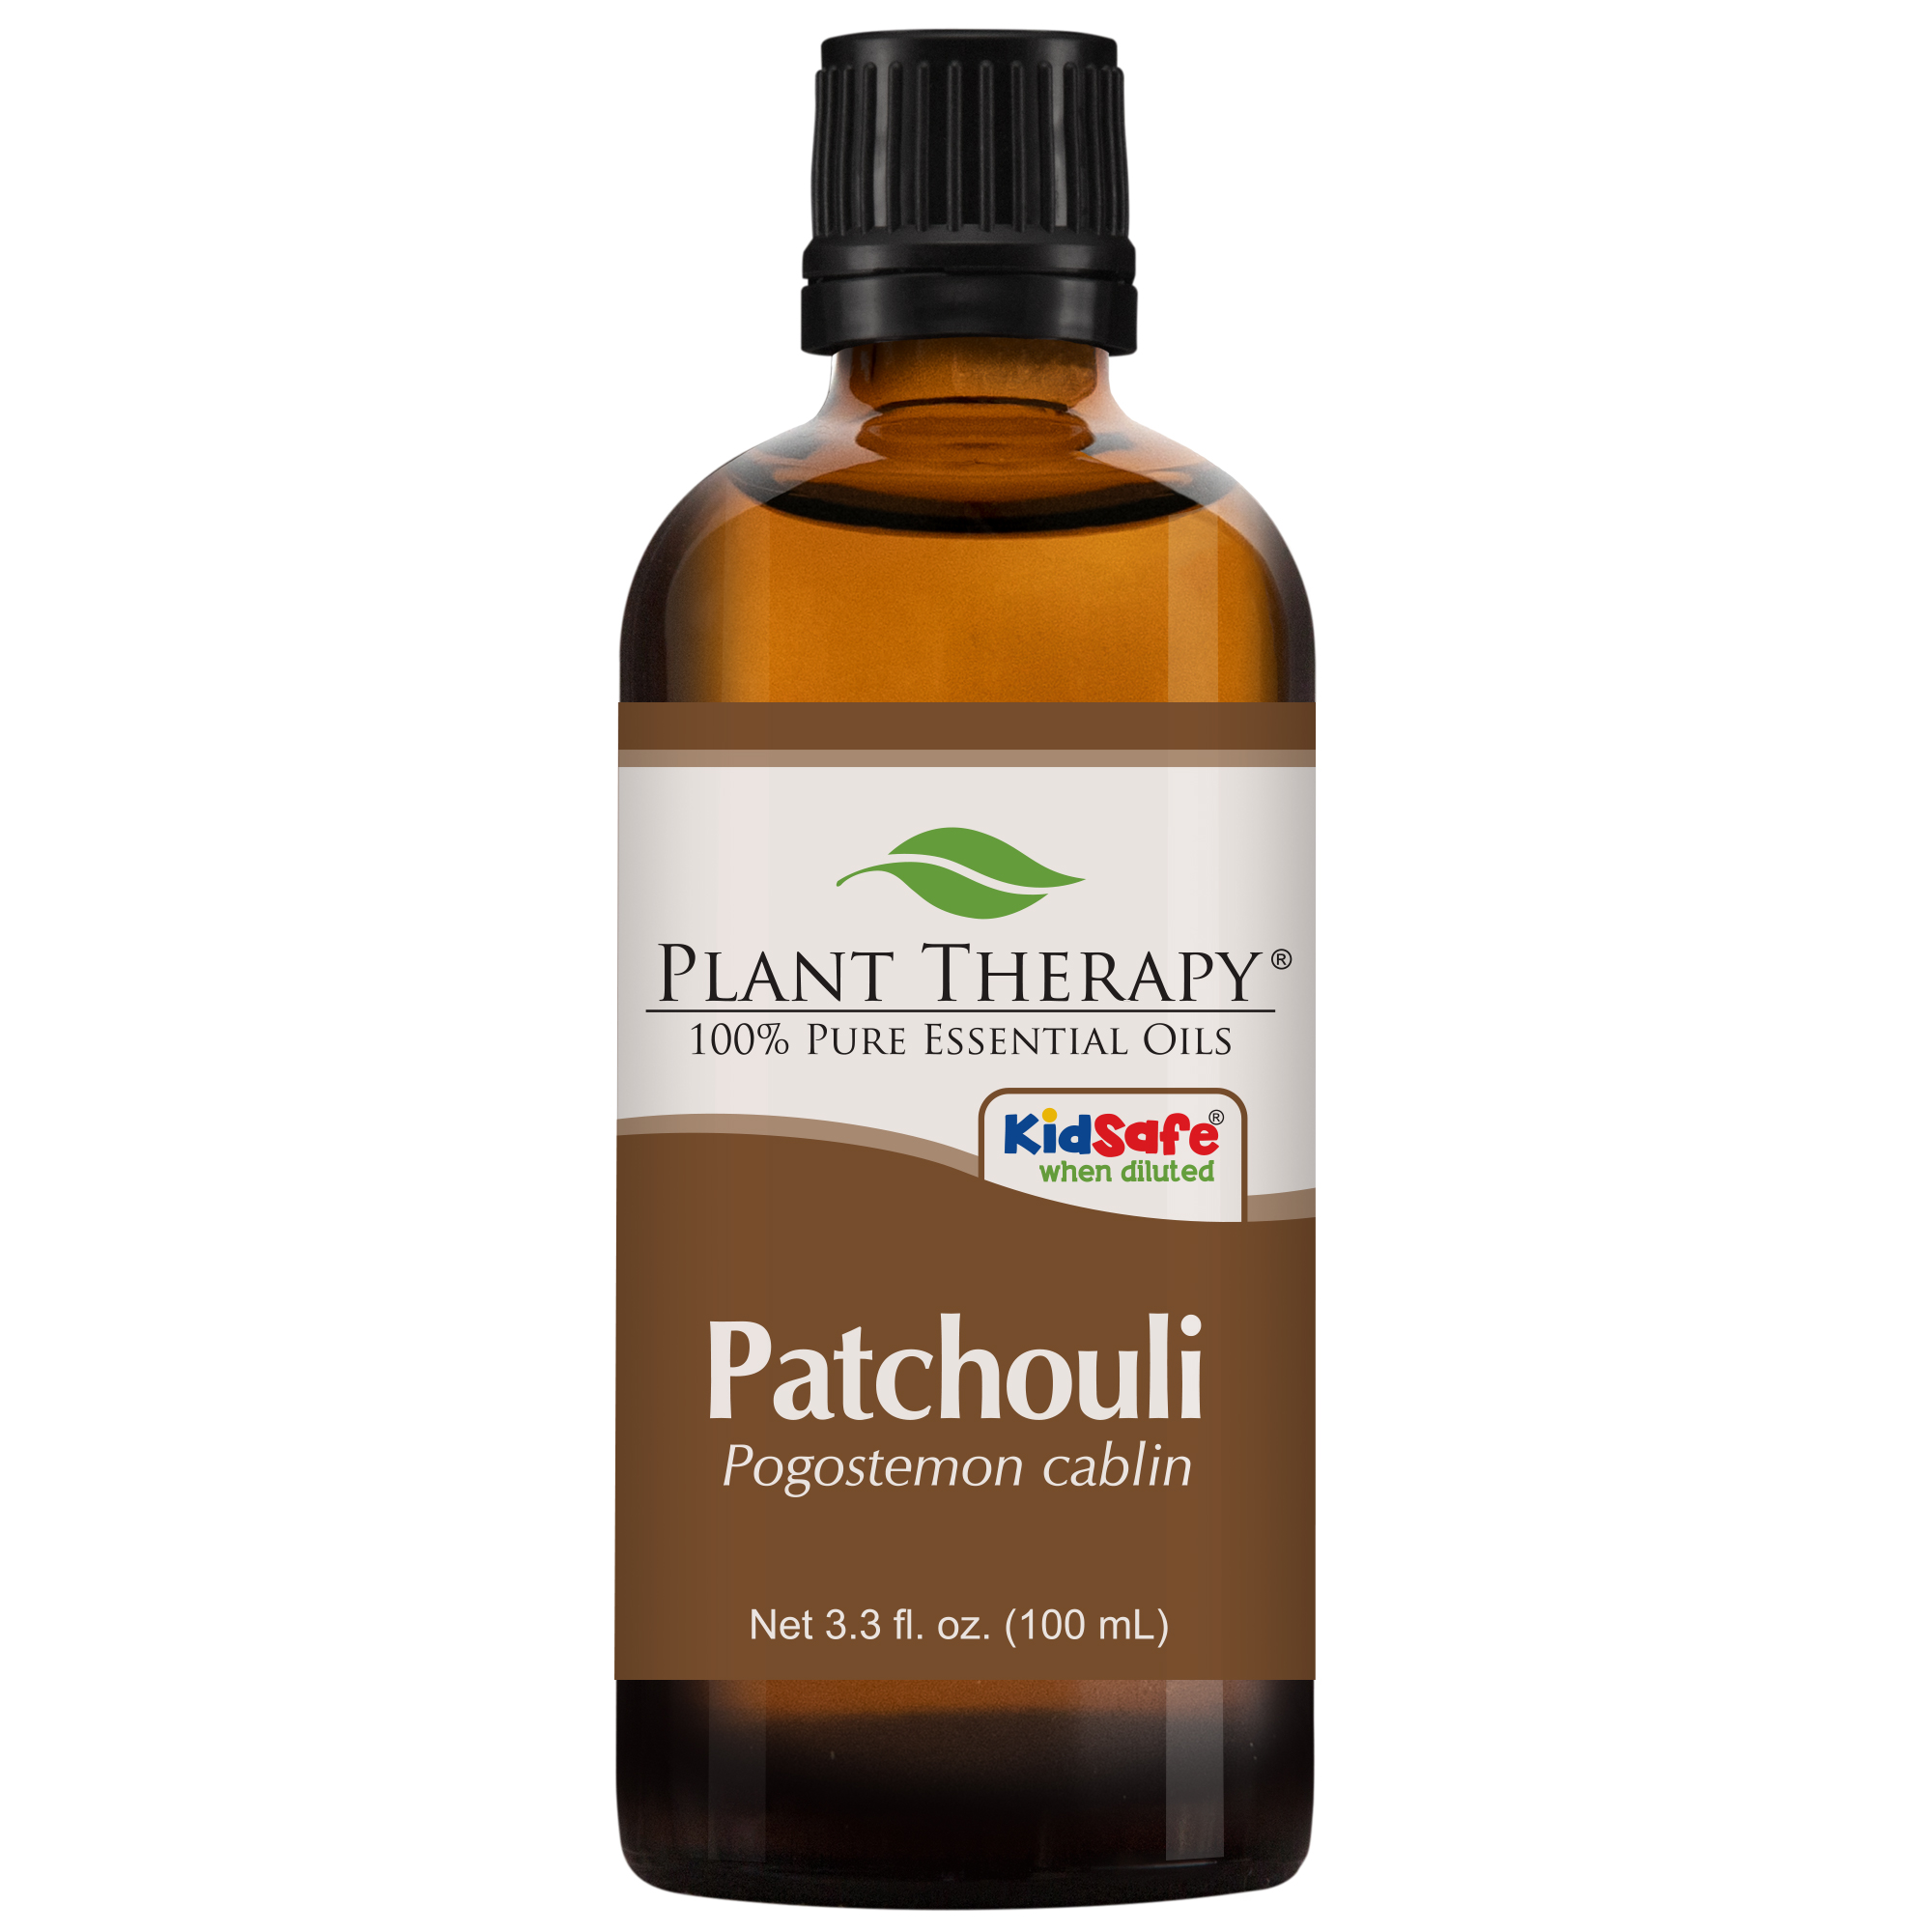 Plant Therapy Patchouli Essential Oil | 100% Pure, Undiluted, Natural Aromatherapy, Therapeutic Grade | 100 mL (3.3 oz)